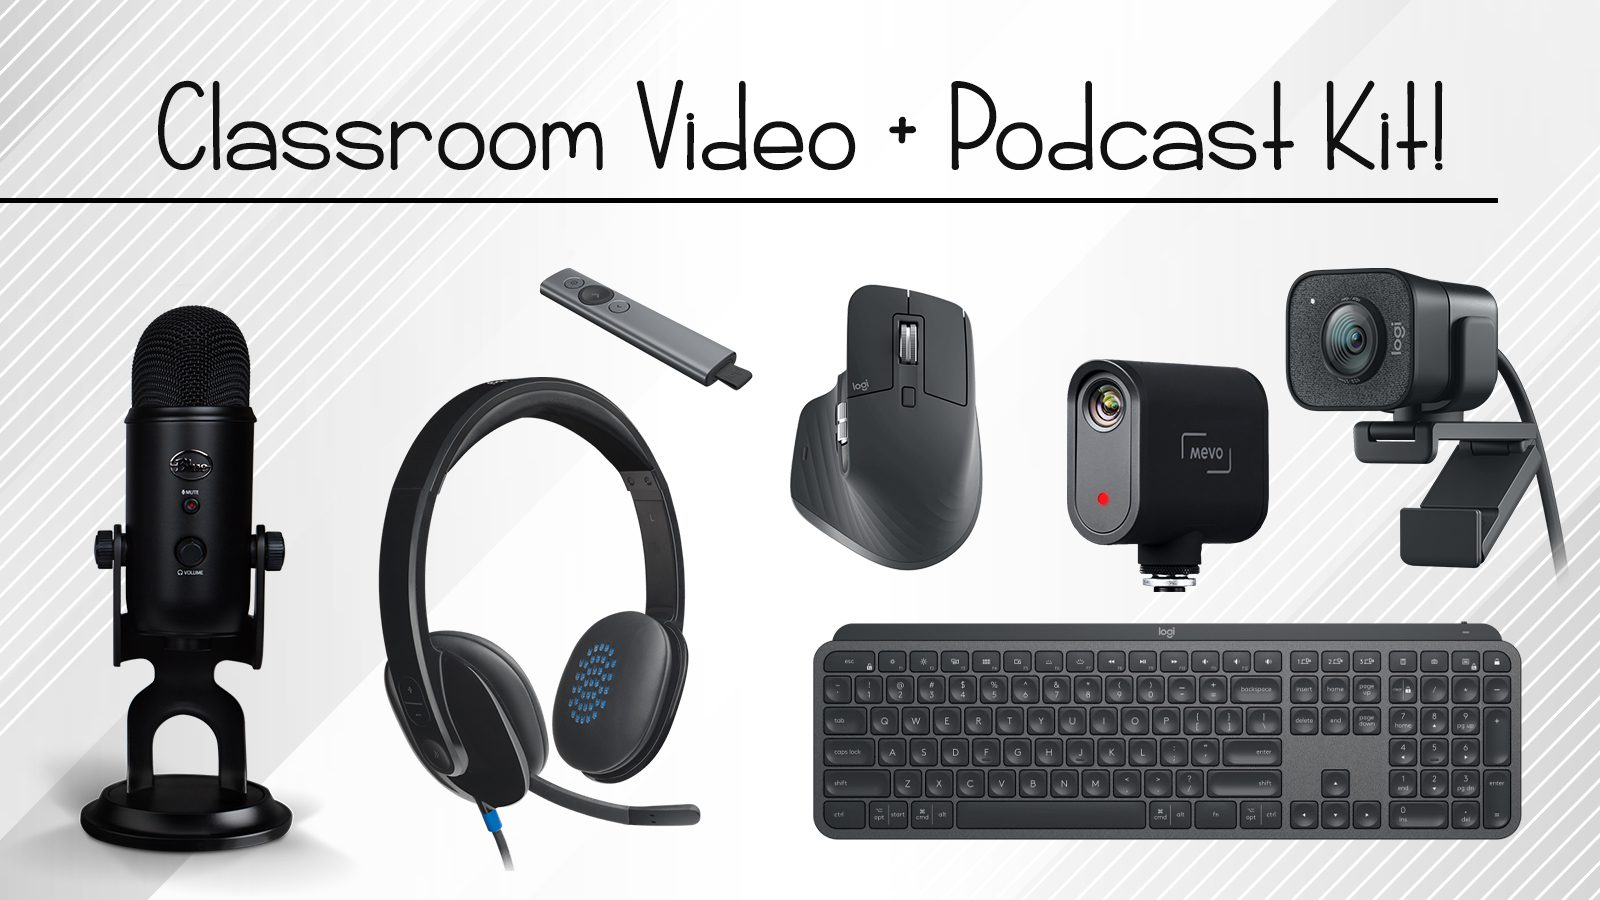 Win Everything You Need to Make Classroom Videos, Podcasts & More!